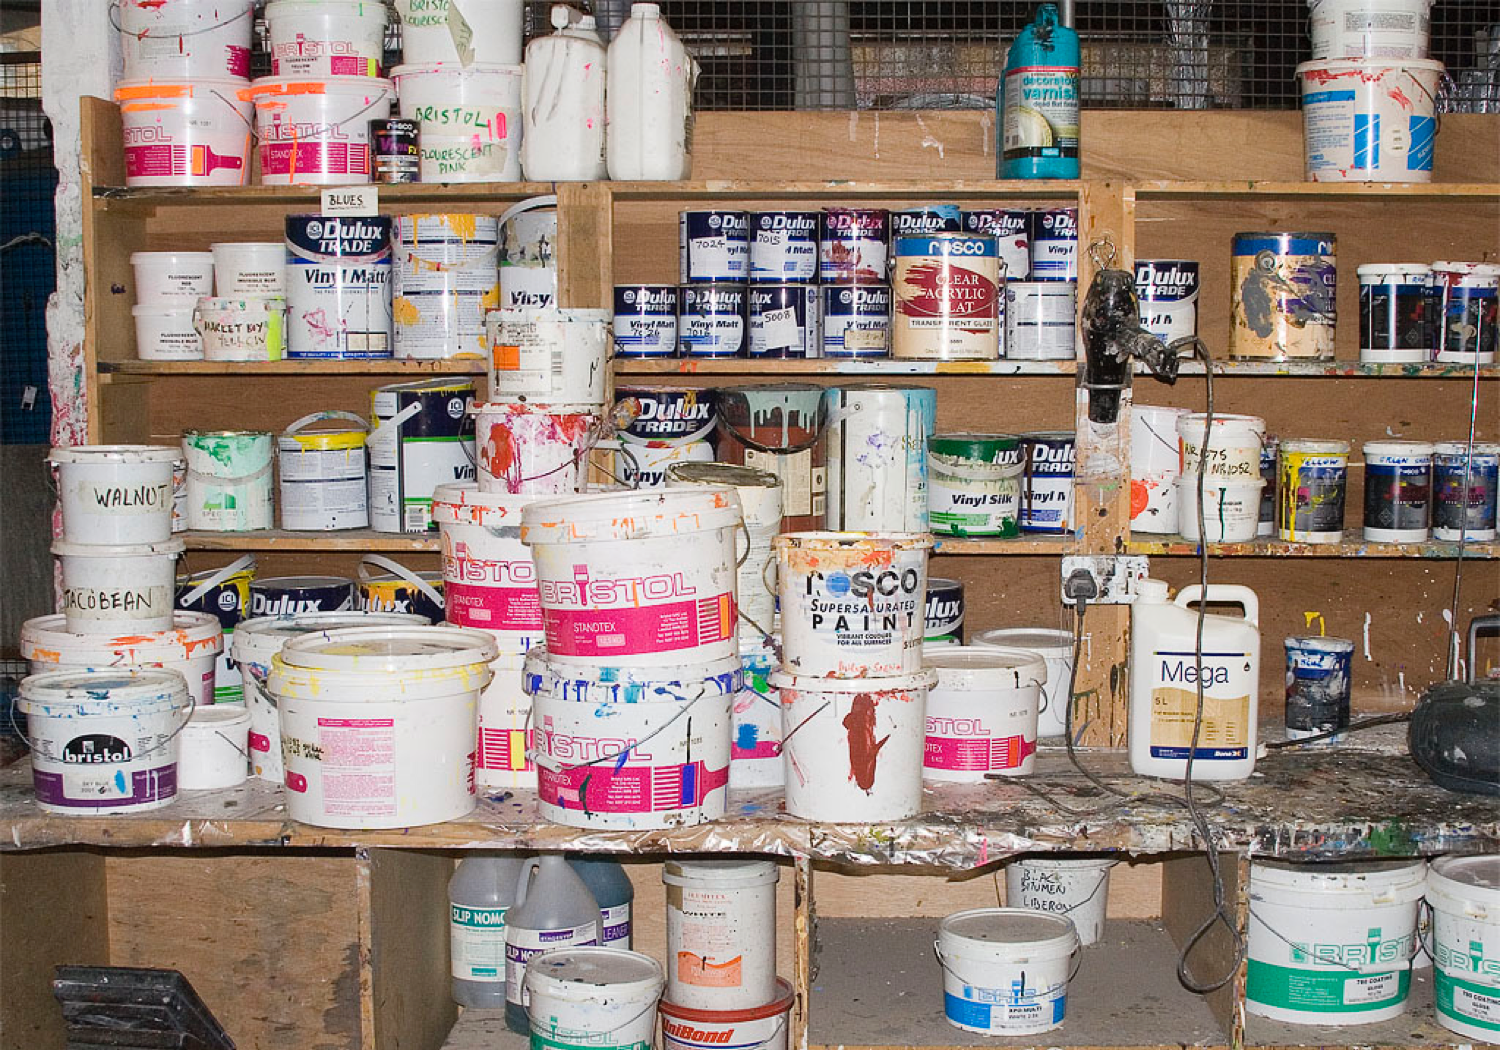 Photograph showing shelves holding the stocks of various paint colours and types in the paint room at the National Theatre (copyright Hilary Vernon-Smith)